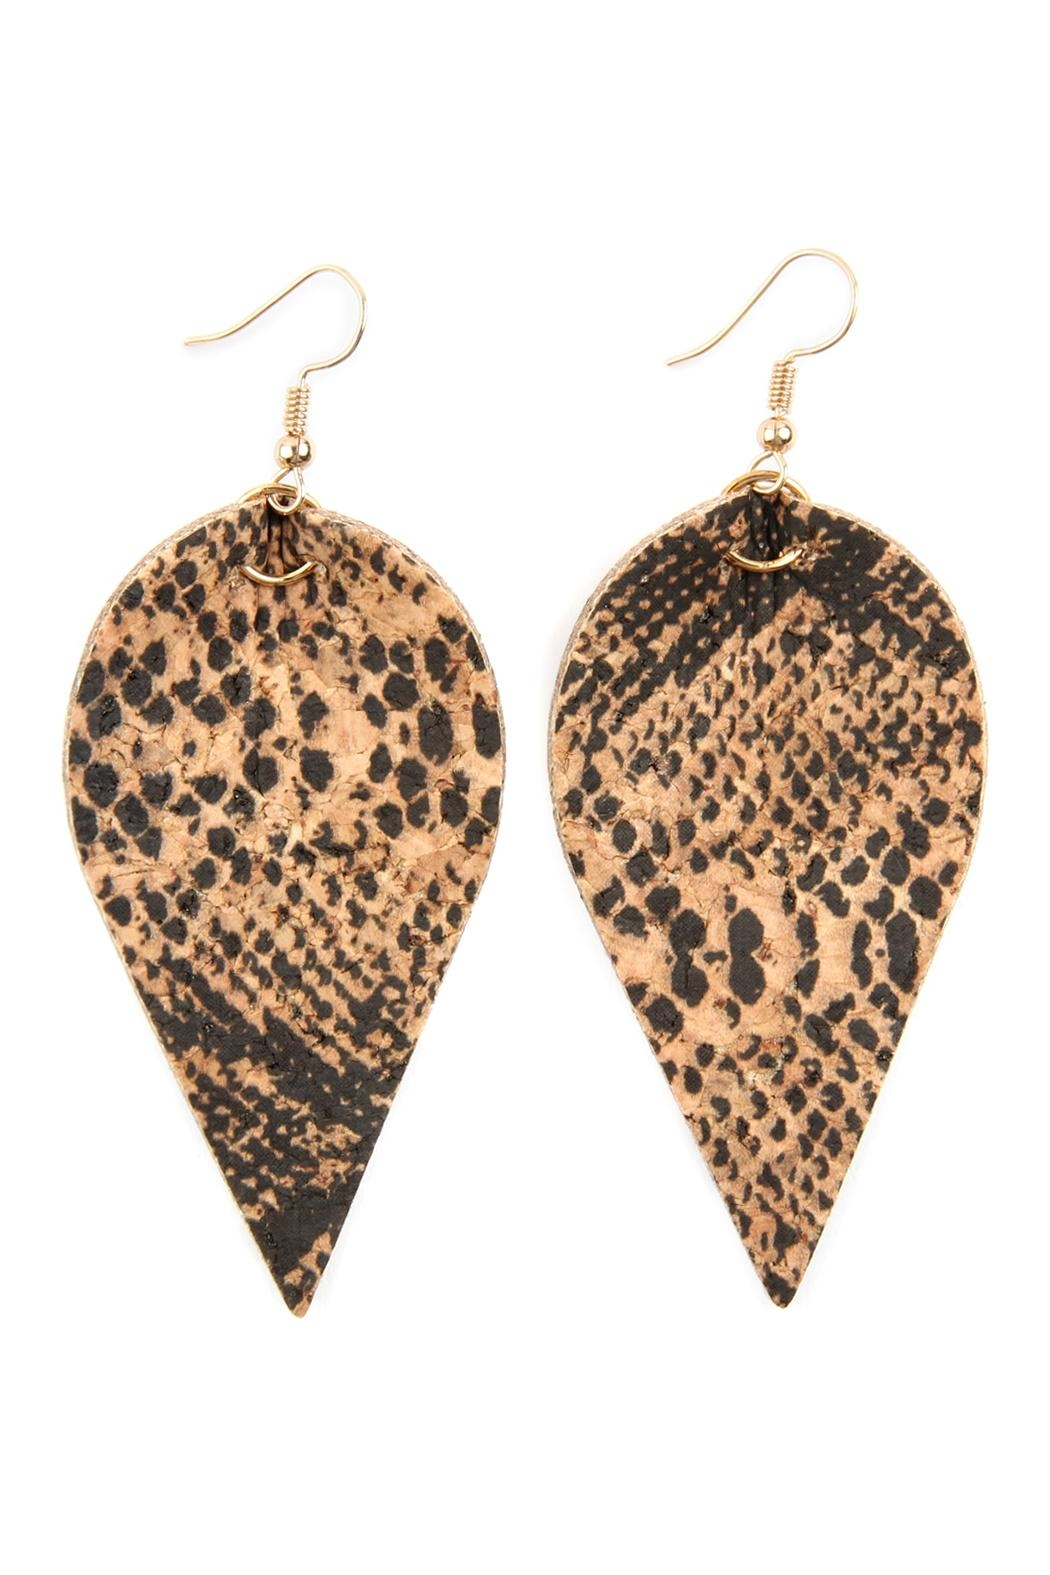 Riah Fashion Snake Skin-Leaf Shape-Cork-Earrings - Main Image